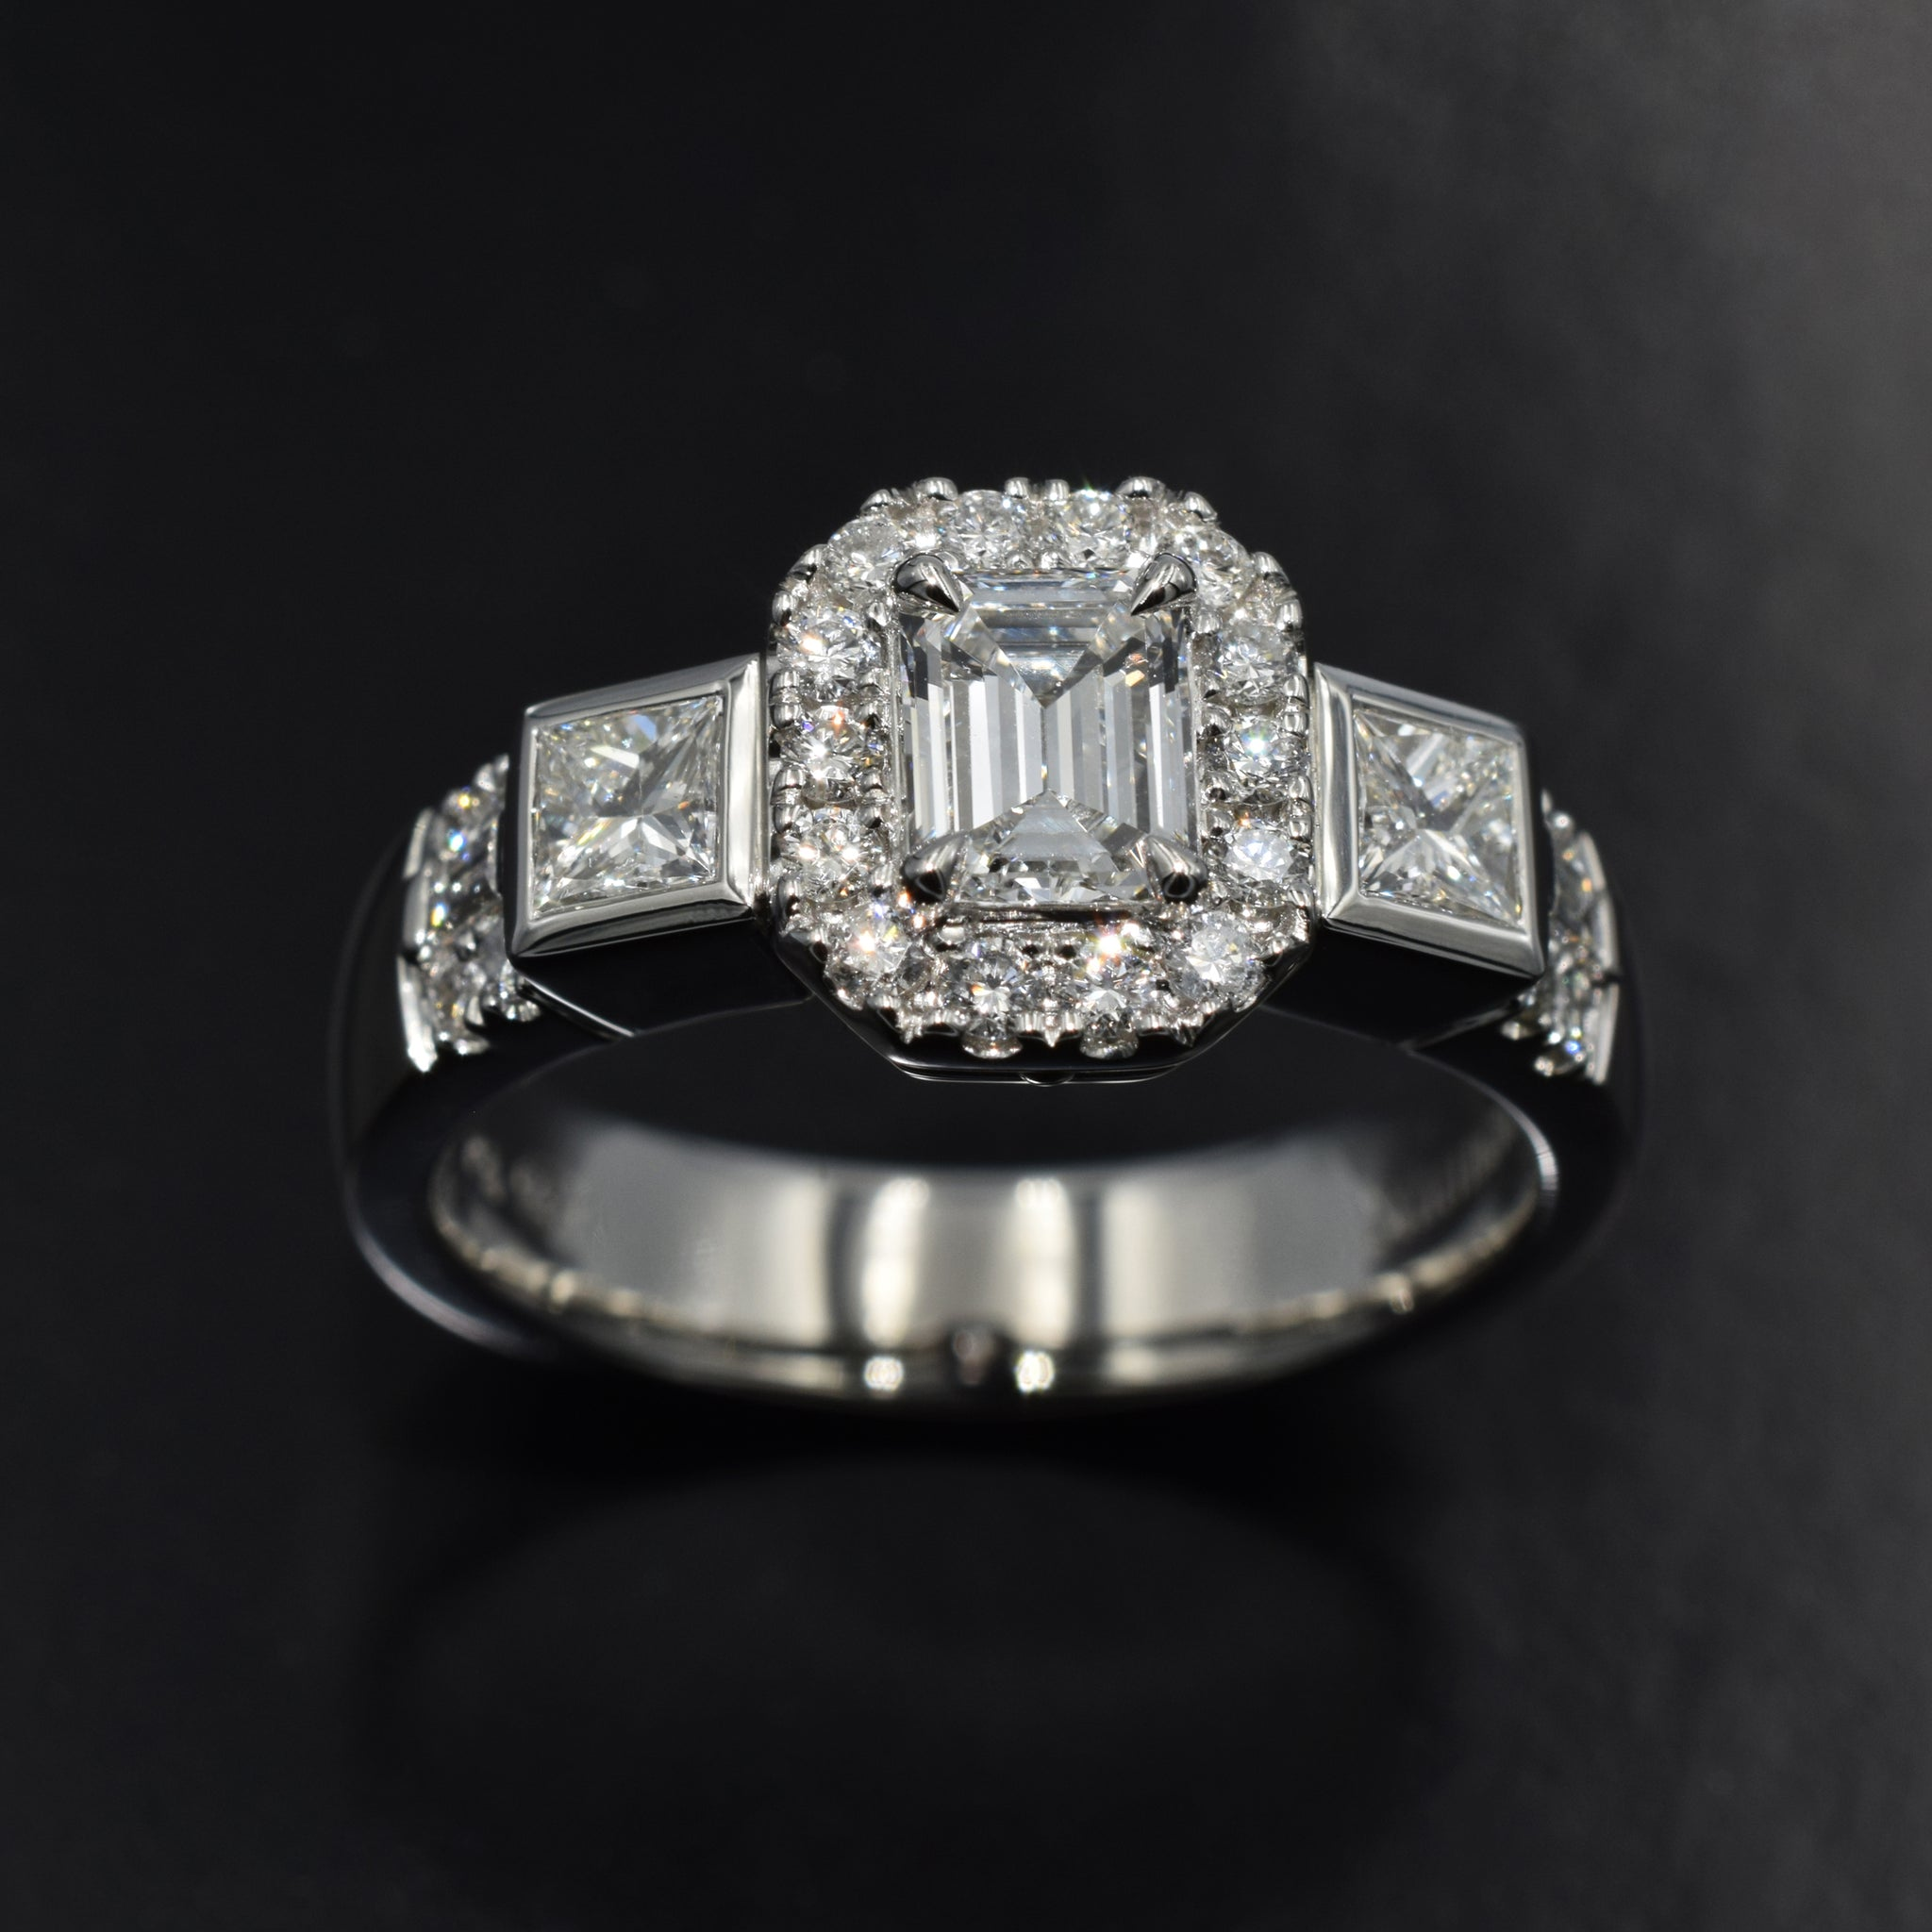 Platinum halo trilogy ring with emerald cut diamond center and princess cut sides